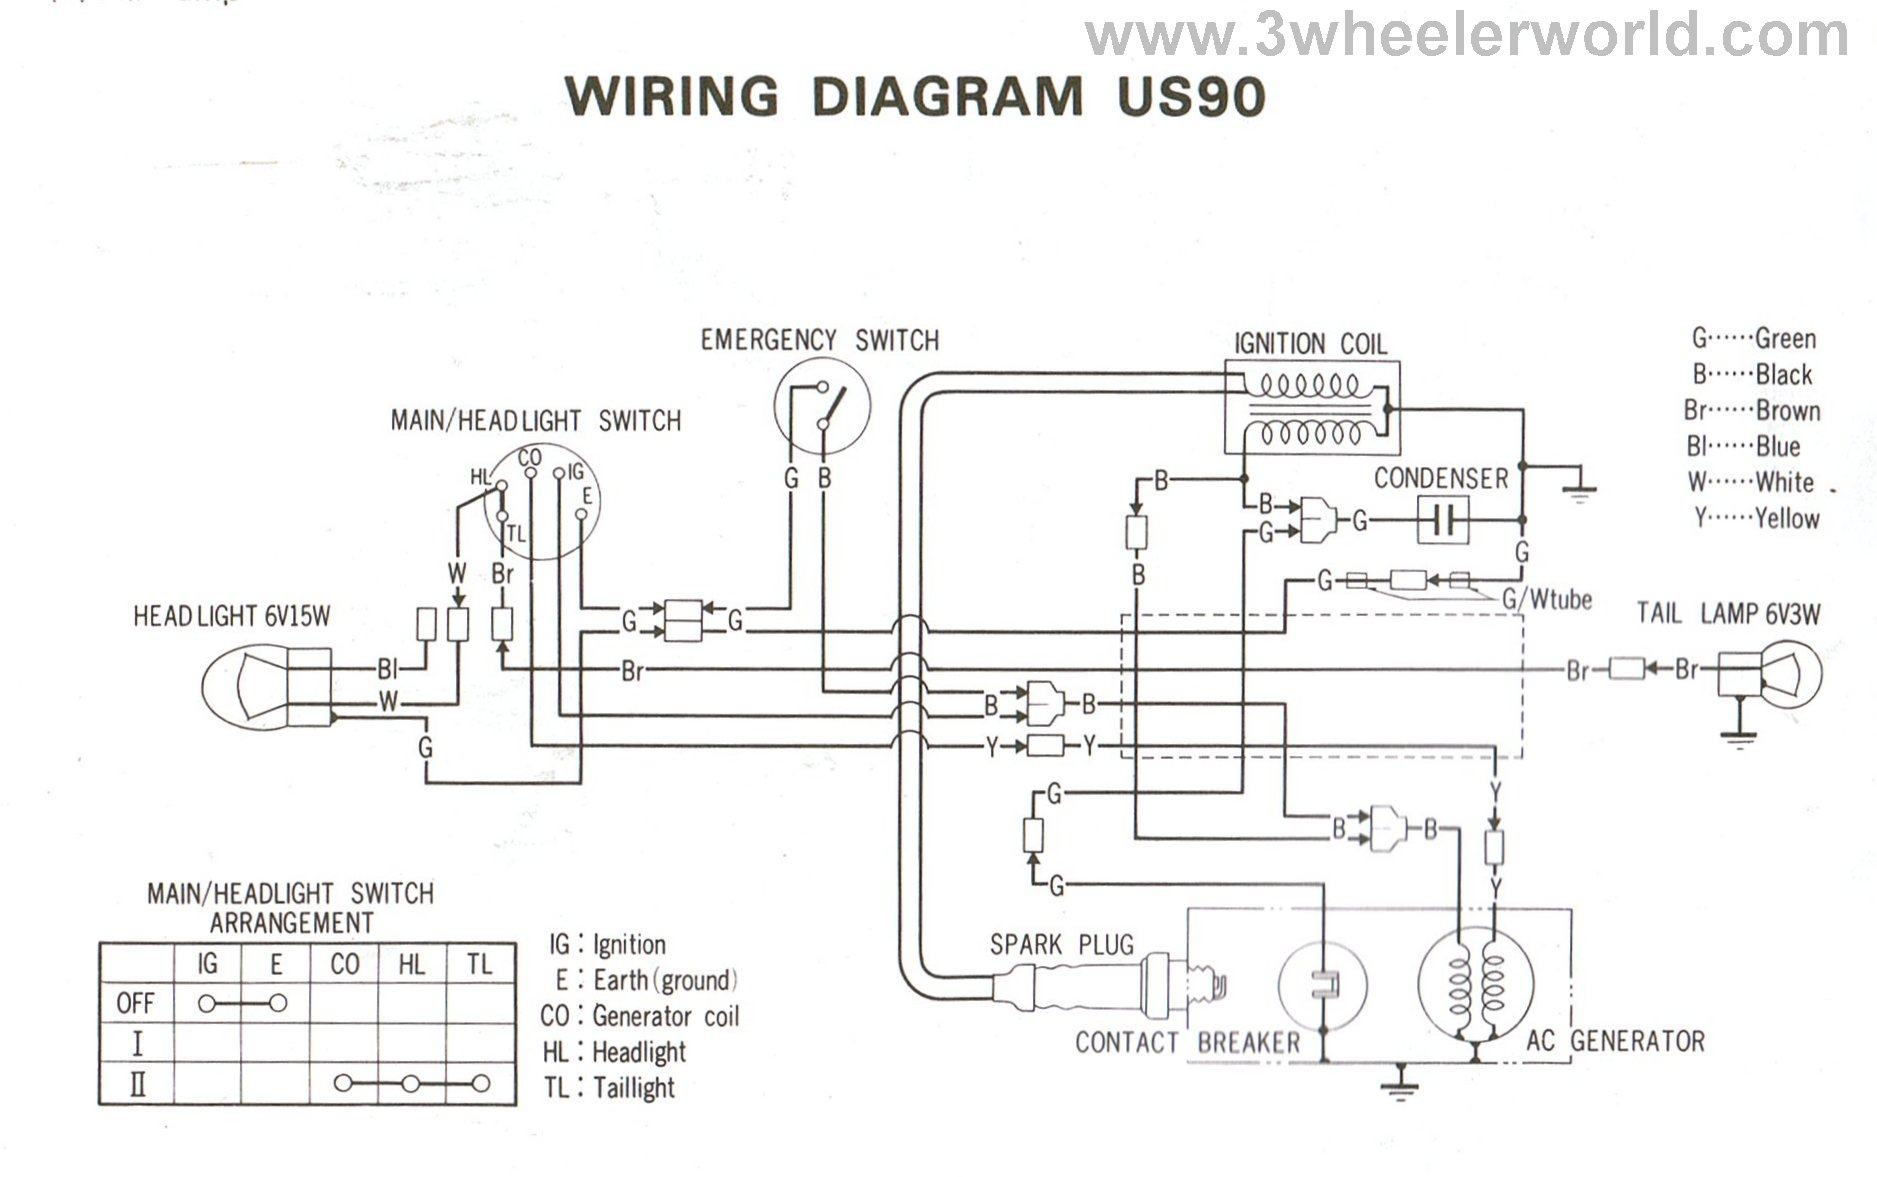 US90HM 3 wheeler world tech help honda wiring diagrams 2001 polaris sportsman 90 wiring diagram at reclaimingppi.co